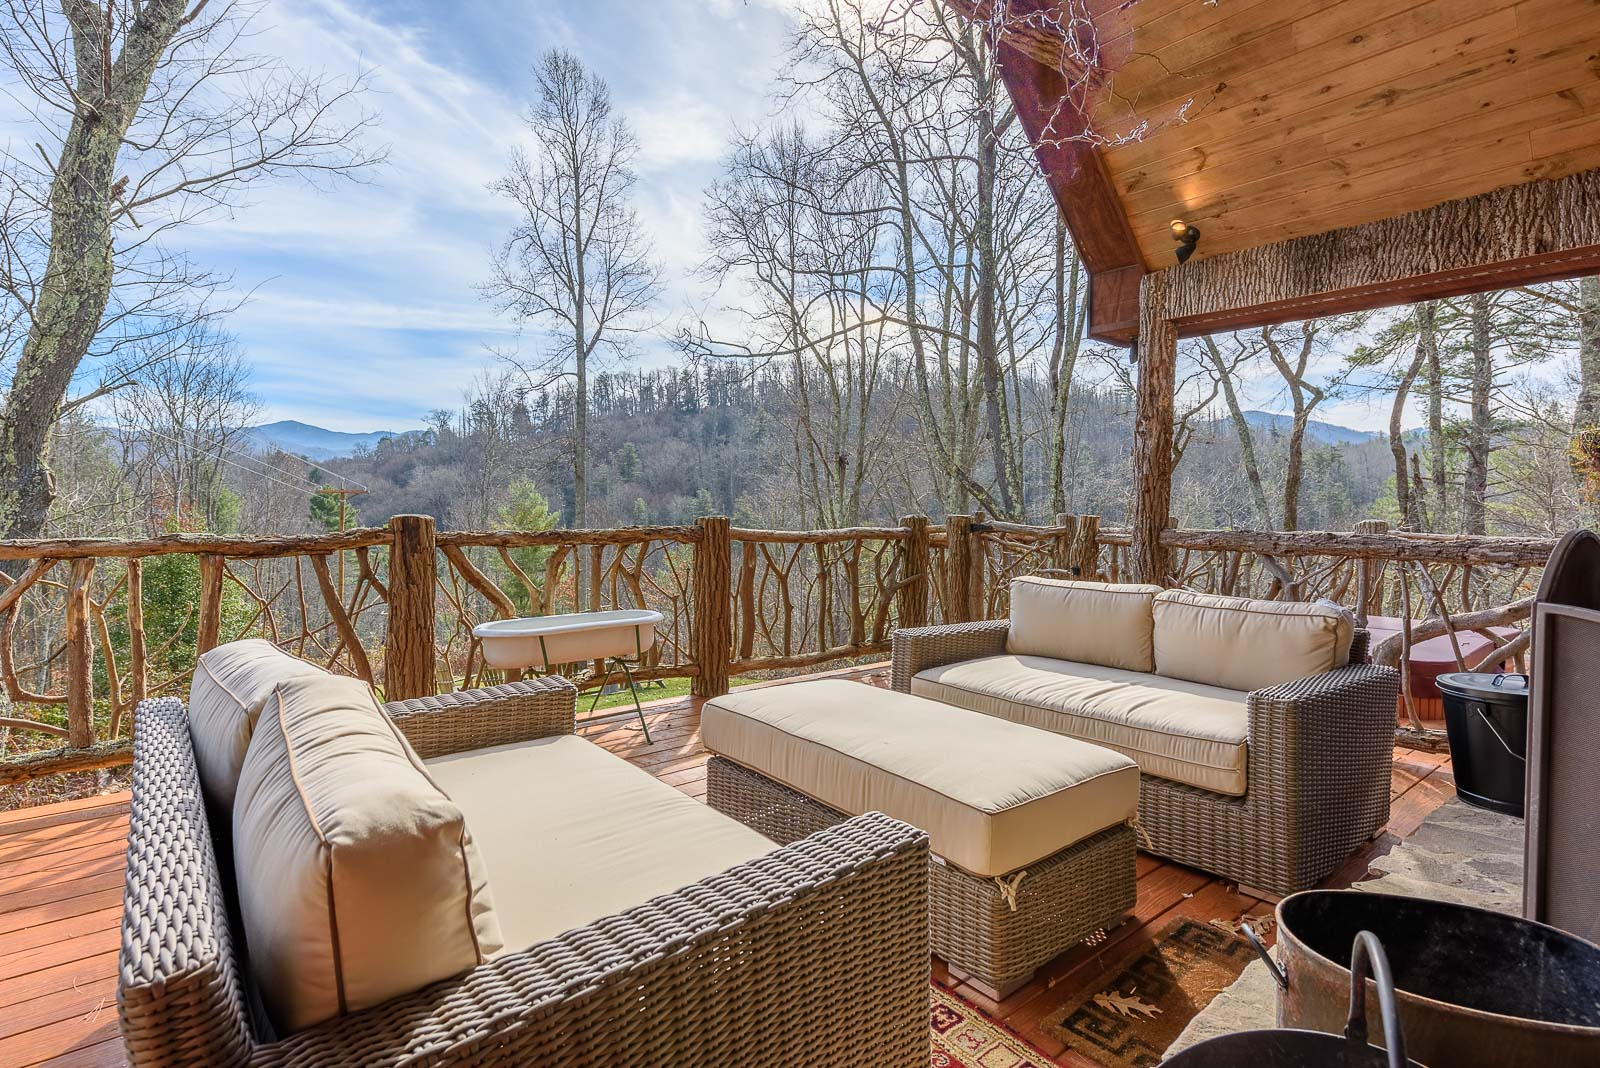 the include nc mountain firepit new info rentals in wooded top lodging grandfather seclusion upscale river condos more high and chalets cabins sleeping settings trout frontage vistas stream country over or cabin